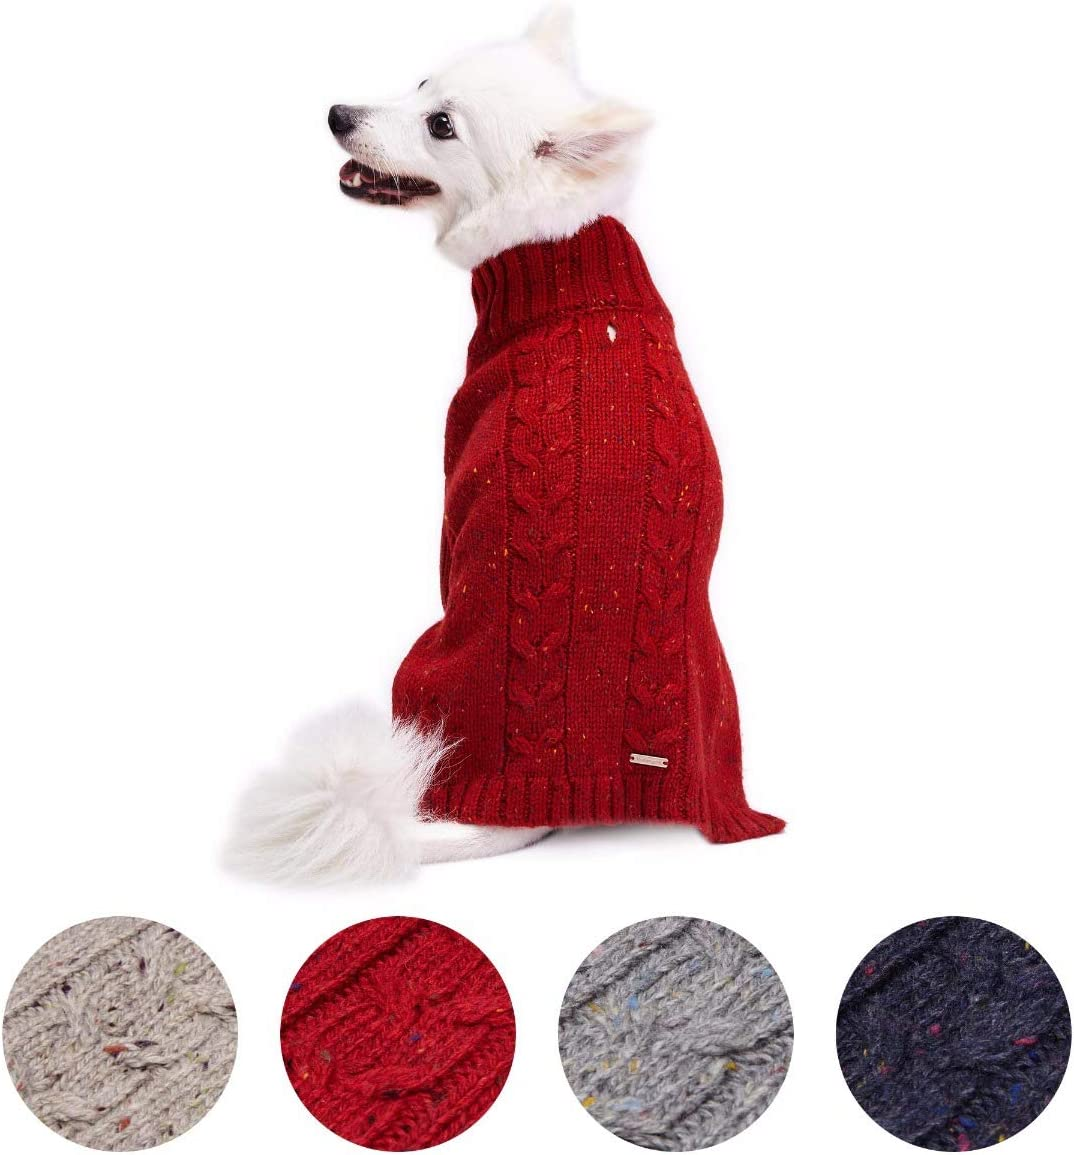 Blueberry Pet 20 Colors Wool Blend or Acrylic Classic Cable Knit Interlock Dog Sweater